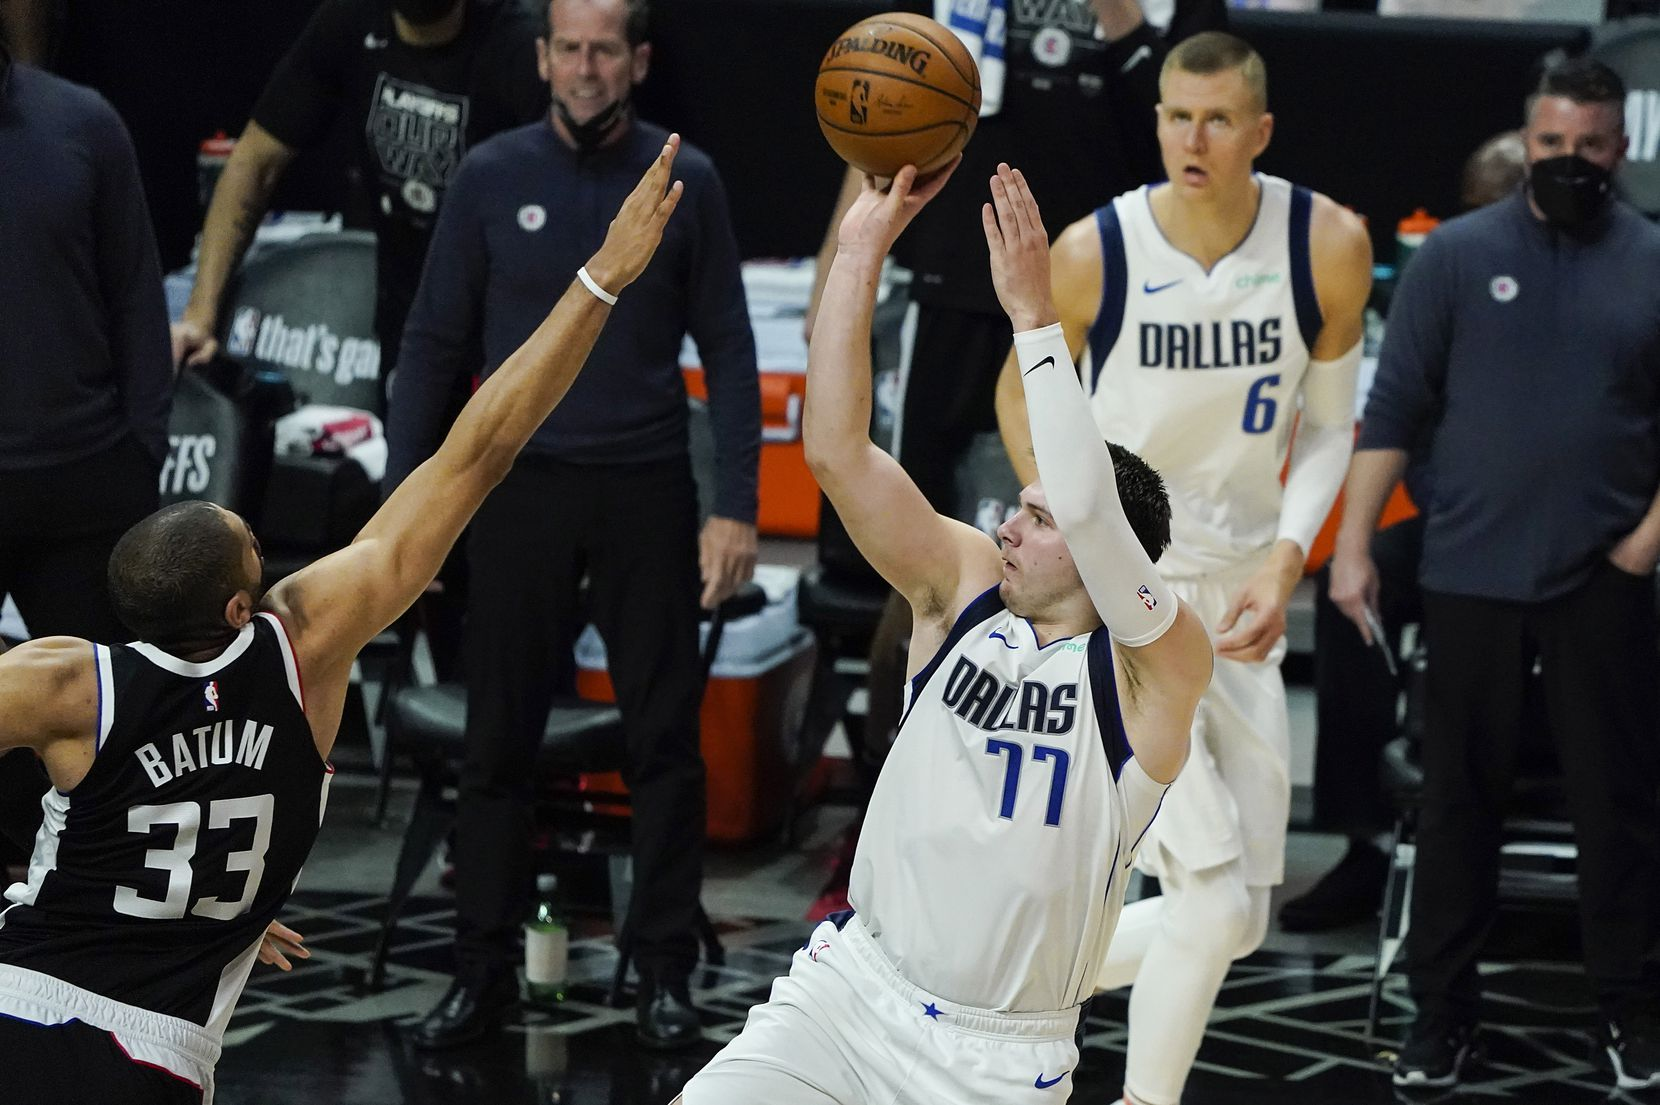 Dallas Mavericks guard Luka Doncic (77) shoots over LA Clippers forward Nicolas Batum (33) during the fourth quarter of an NBA playoff basketball game at the Staples Center on Wednesday, June 2, 2021, in Los Angeles. The Mavericks won the game 105-100. (Smiley N. Pool/The Dallas Morning News)